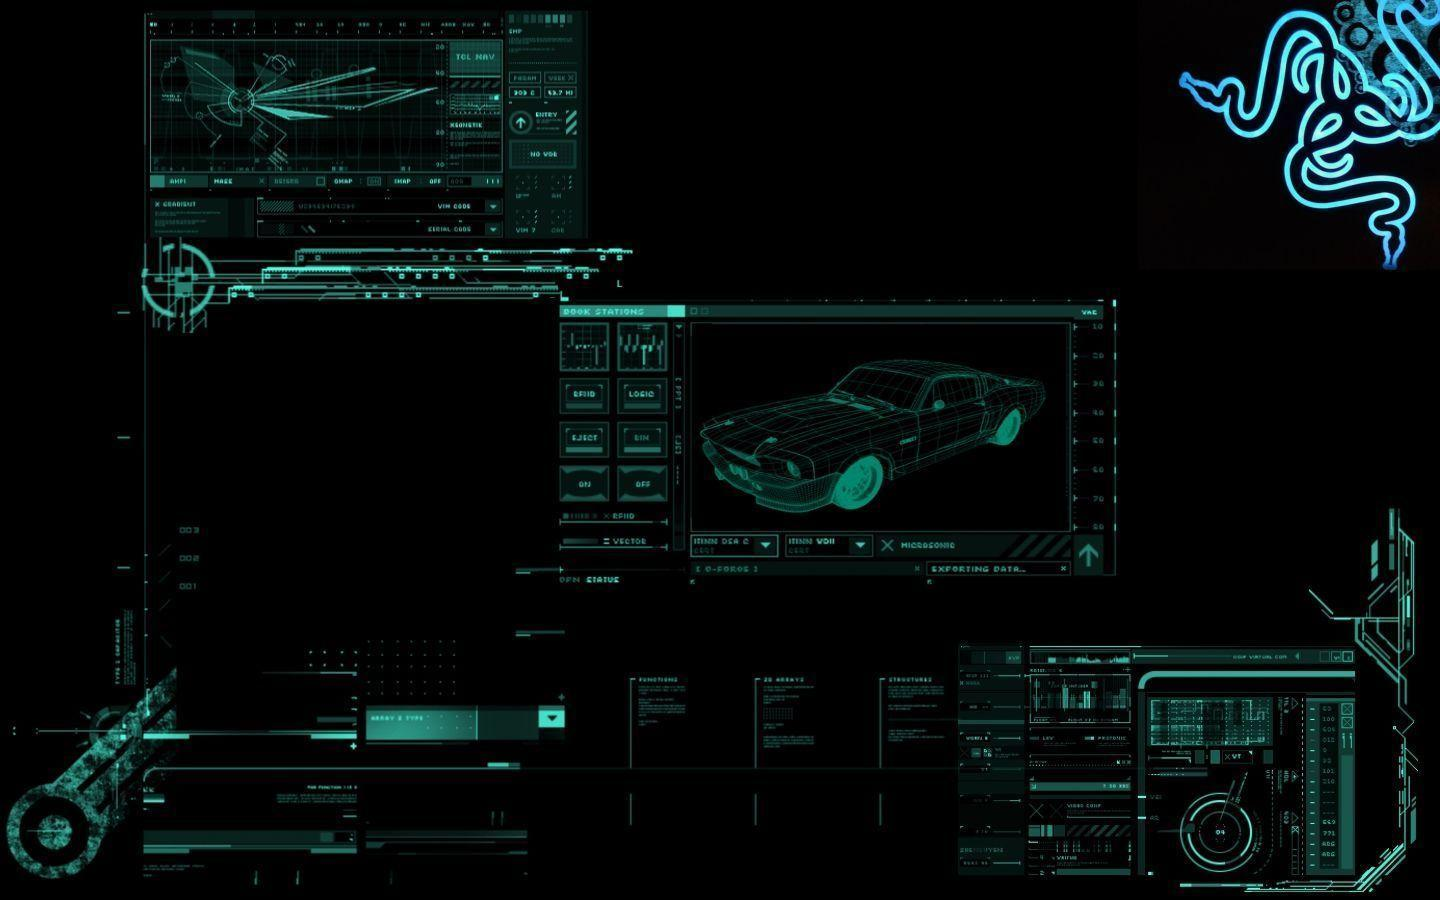 Stunning Futuristic Wallpapers 1440x900PX ~ Futuristic Wallpapers